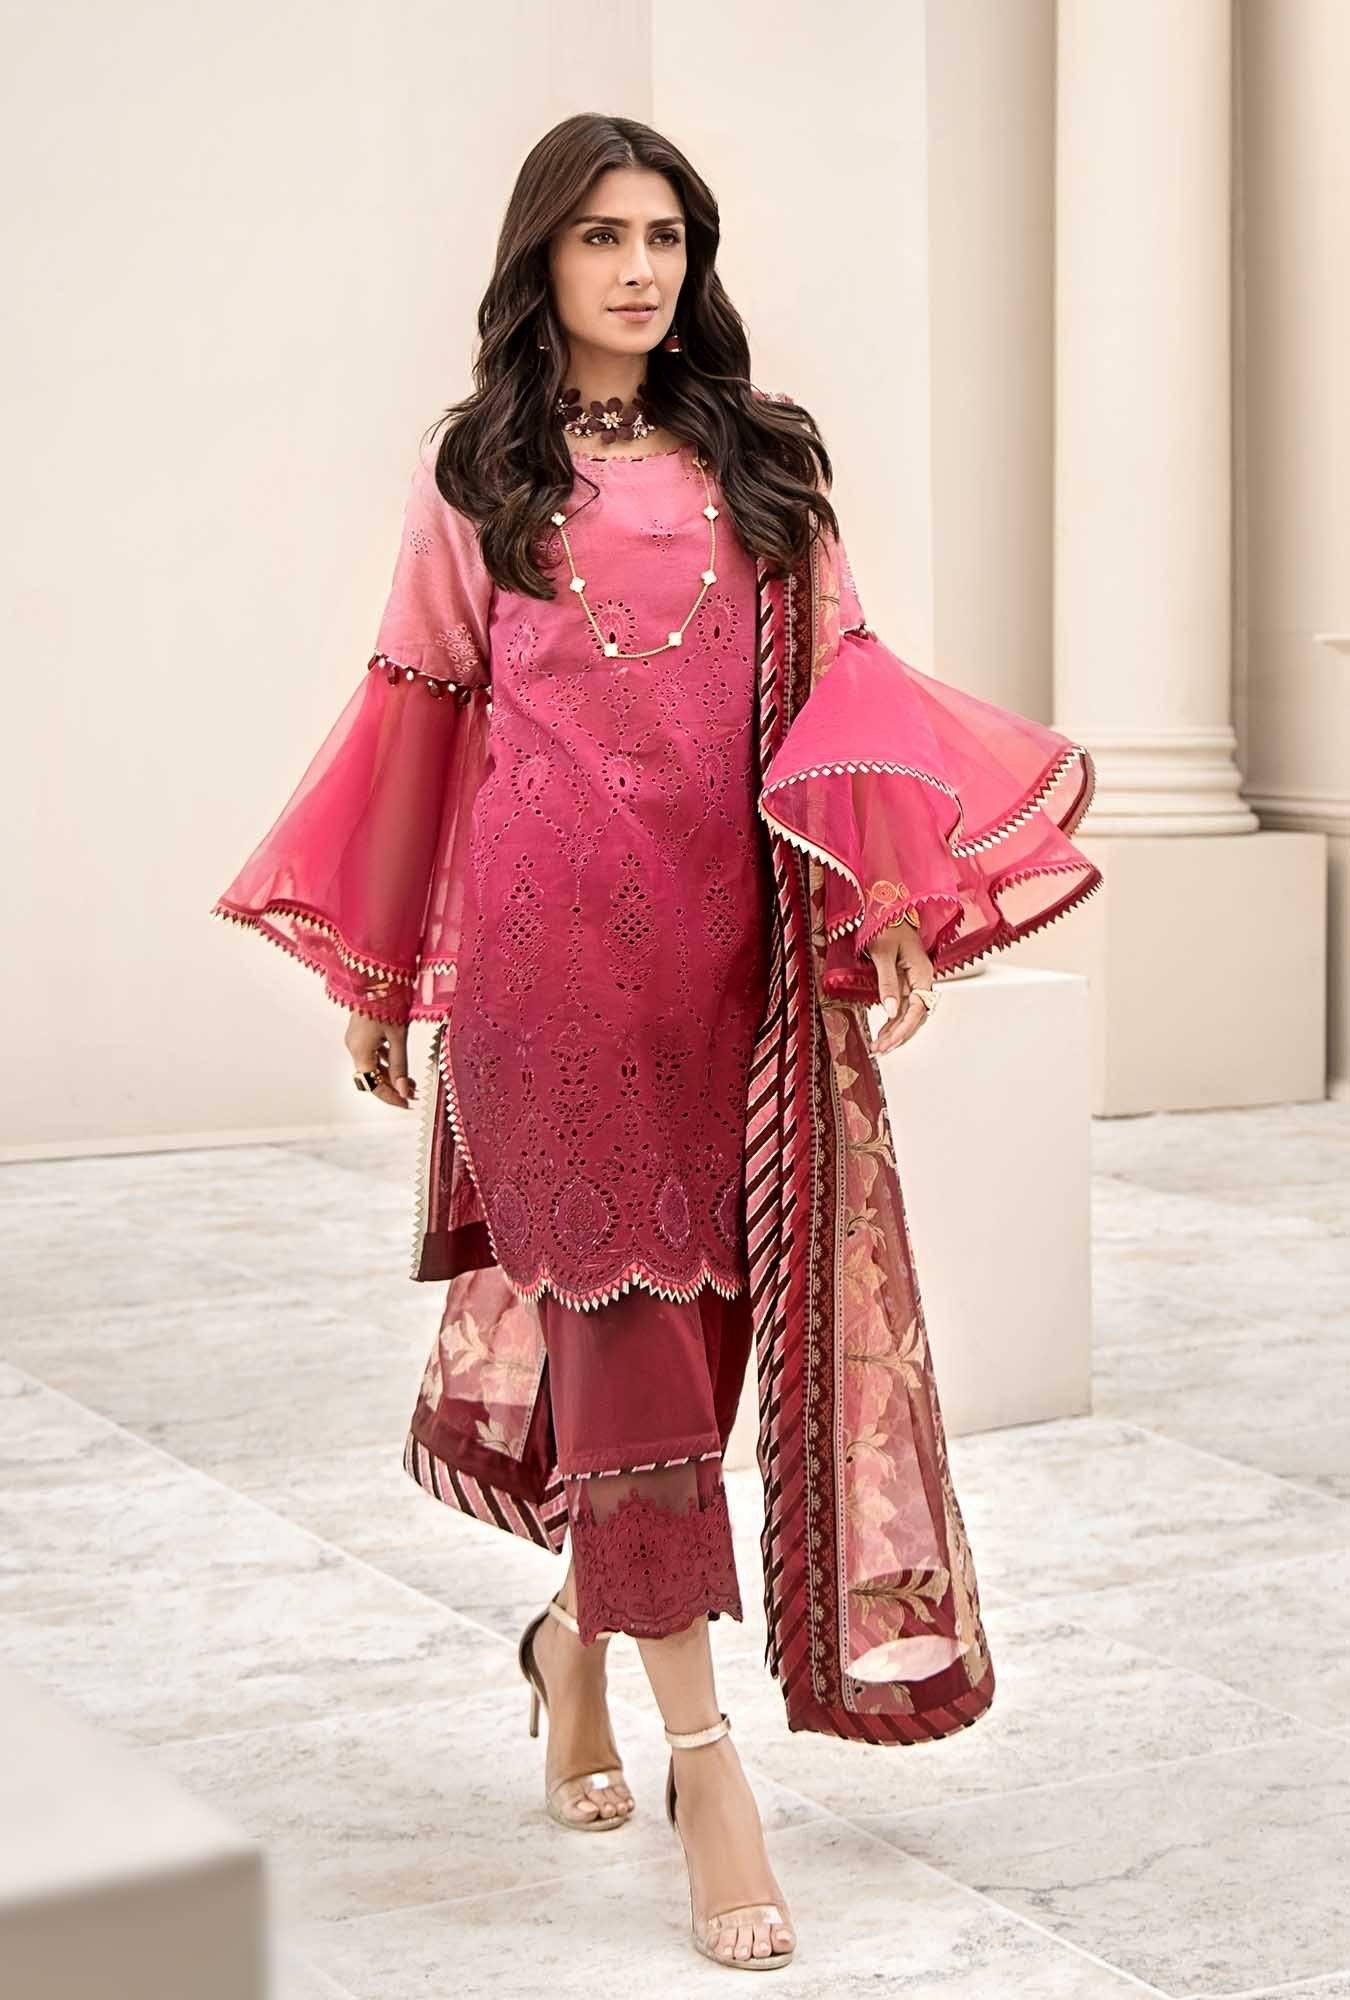 Noor red -Embroidered 3pc lawn chicken kari dress with printed chiffon dupatta.